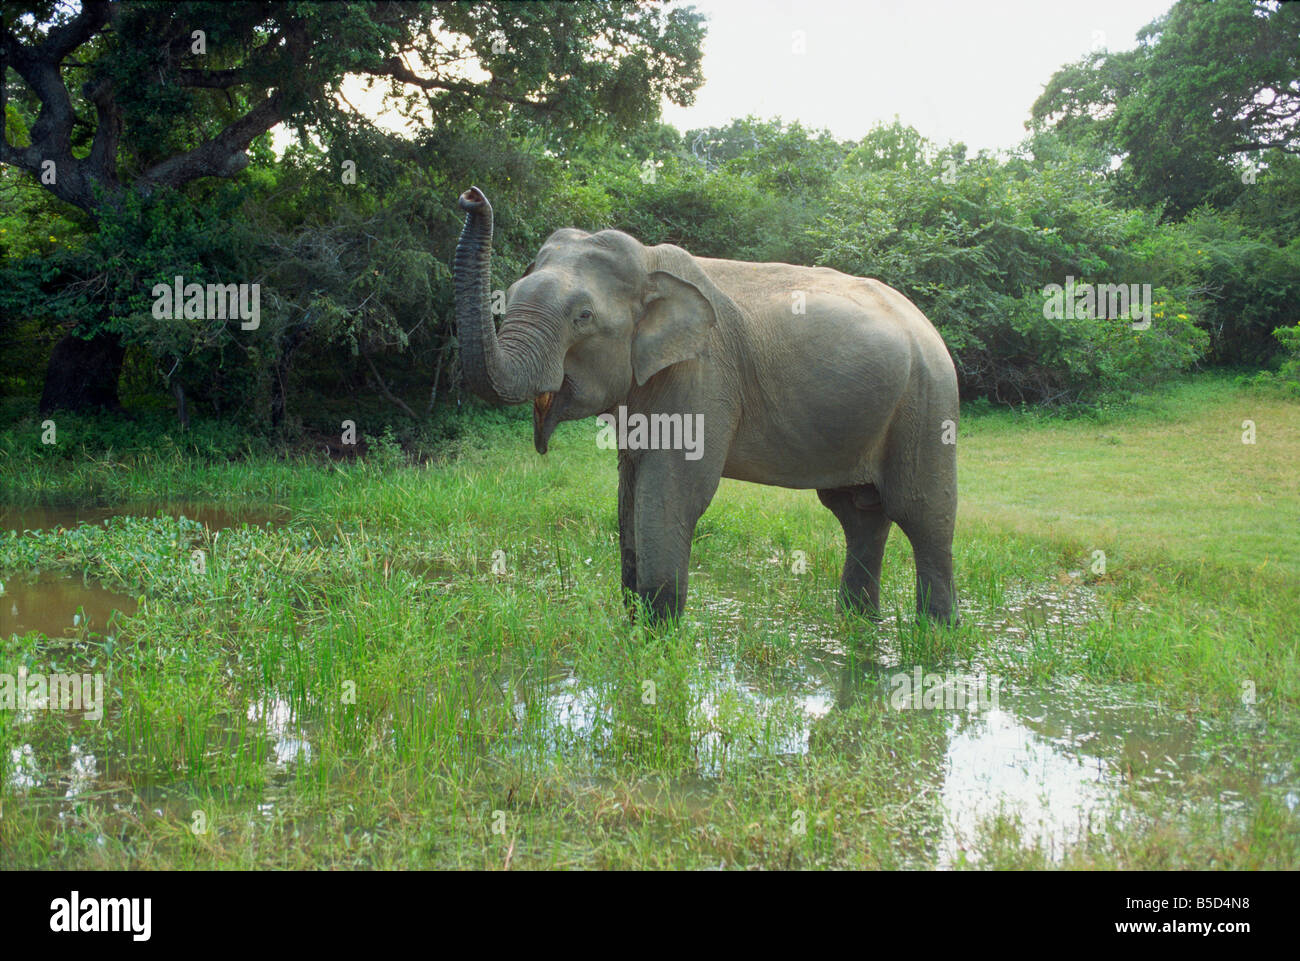 Elephant in Yala Game Park Sri Lanka Asia - Stock Image